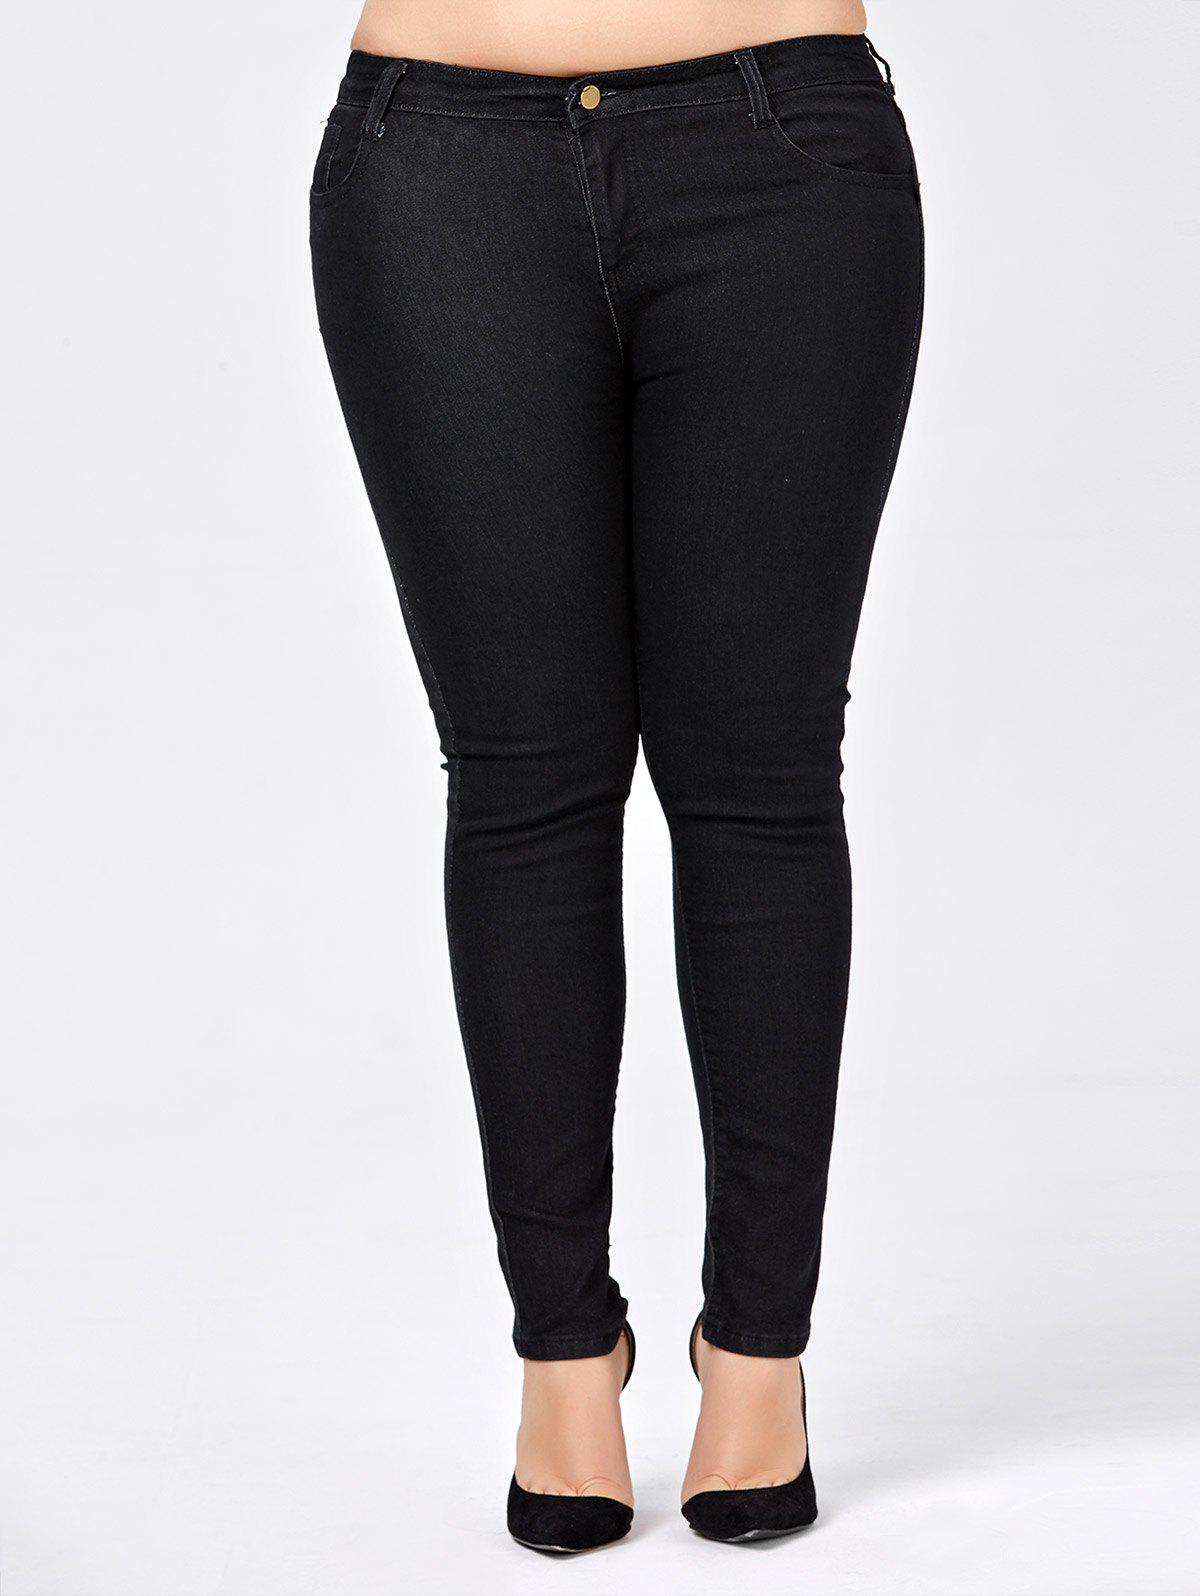 Plus Size Skinny Jeans with PocketWOMEN<br><br>Size: 2XL; Color: BLACK; Style: Fashion; Length: Normal; Material: Jeans; Fabric Type: Denim; Fit Type: Skinny; Waist Type: Mid; Closure Type: Button Fly; Front Style: Flat; Pattern Type: Solid; Embellishment: Pockets; Pant Style: Pencil Pants; With Belt: No; Weight: 0.5200kg; Package Contents: 1 x Jeans;